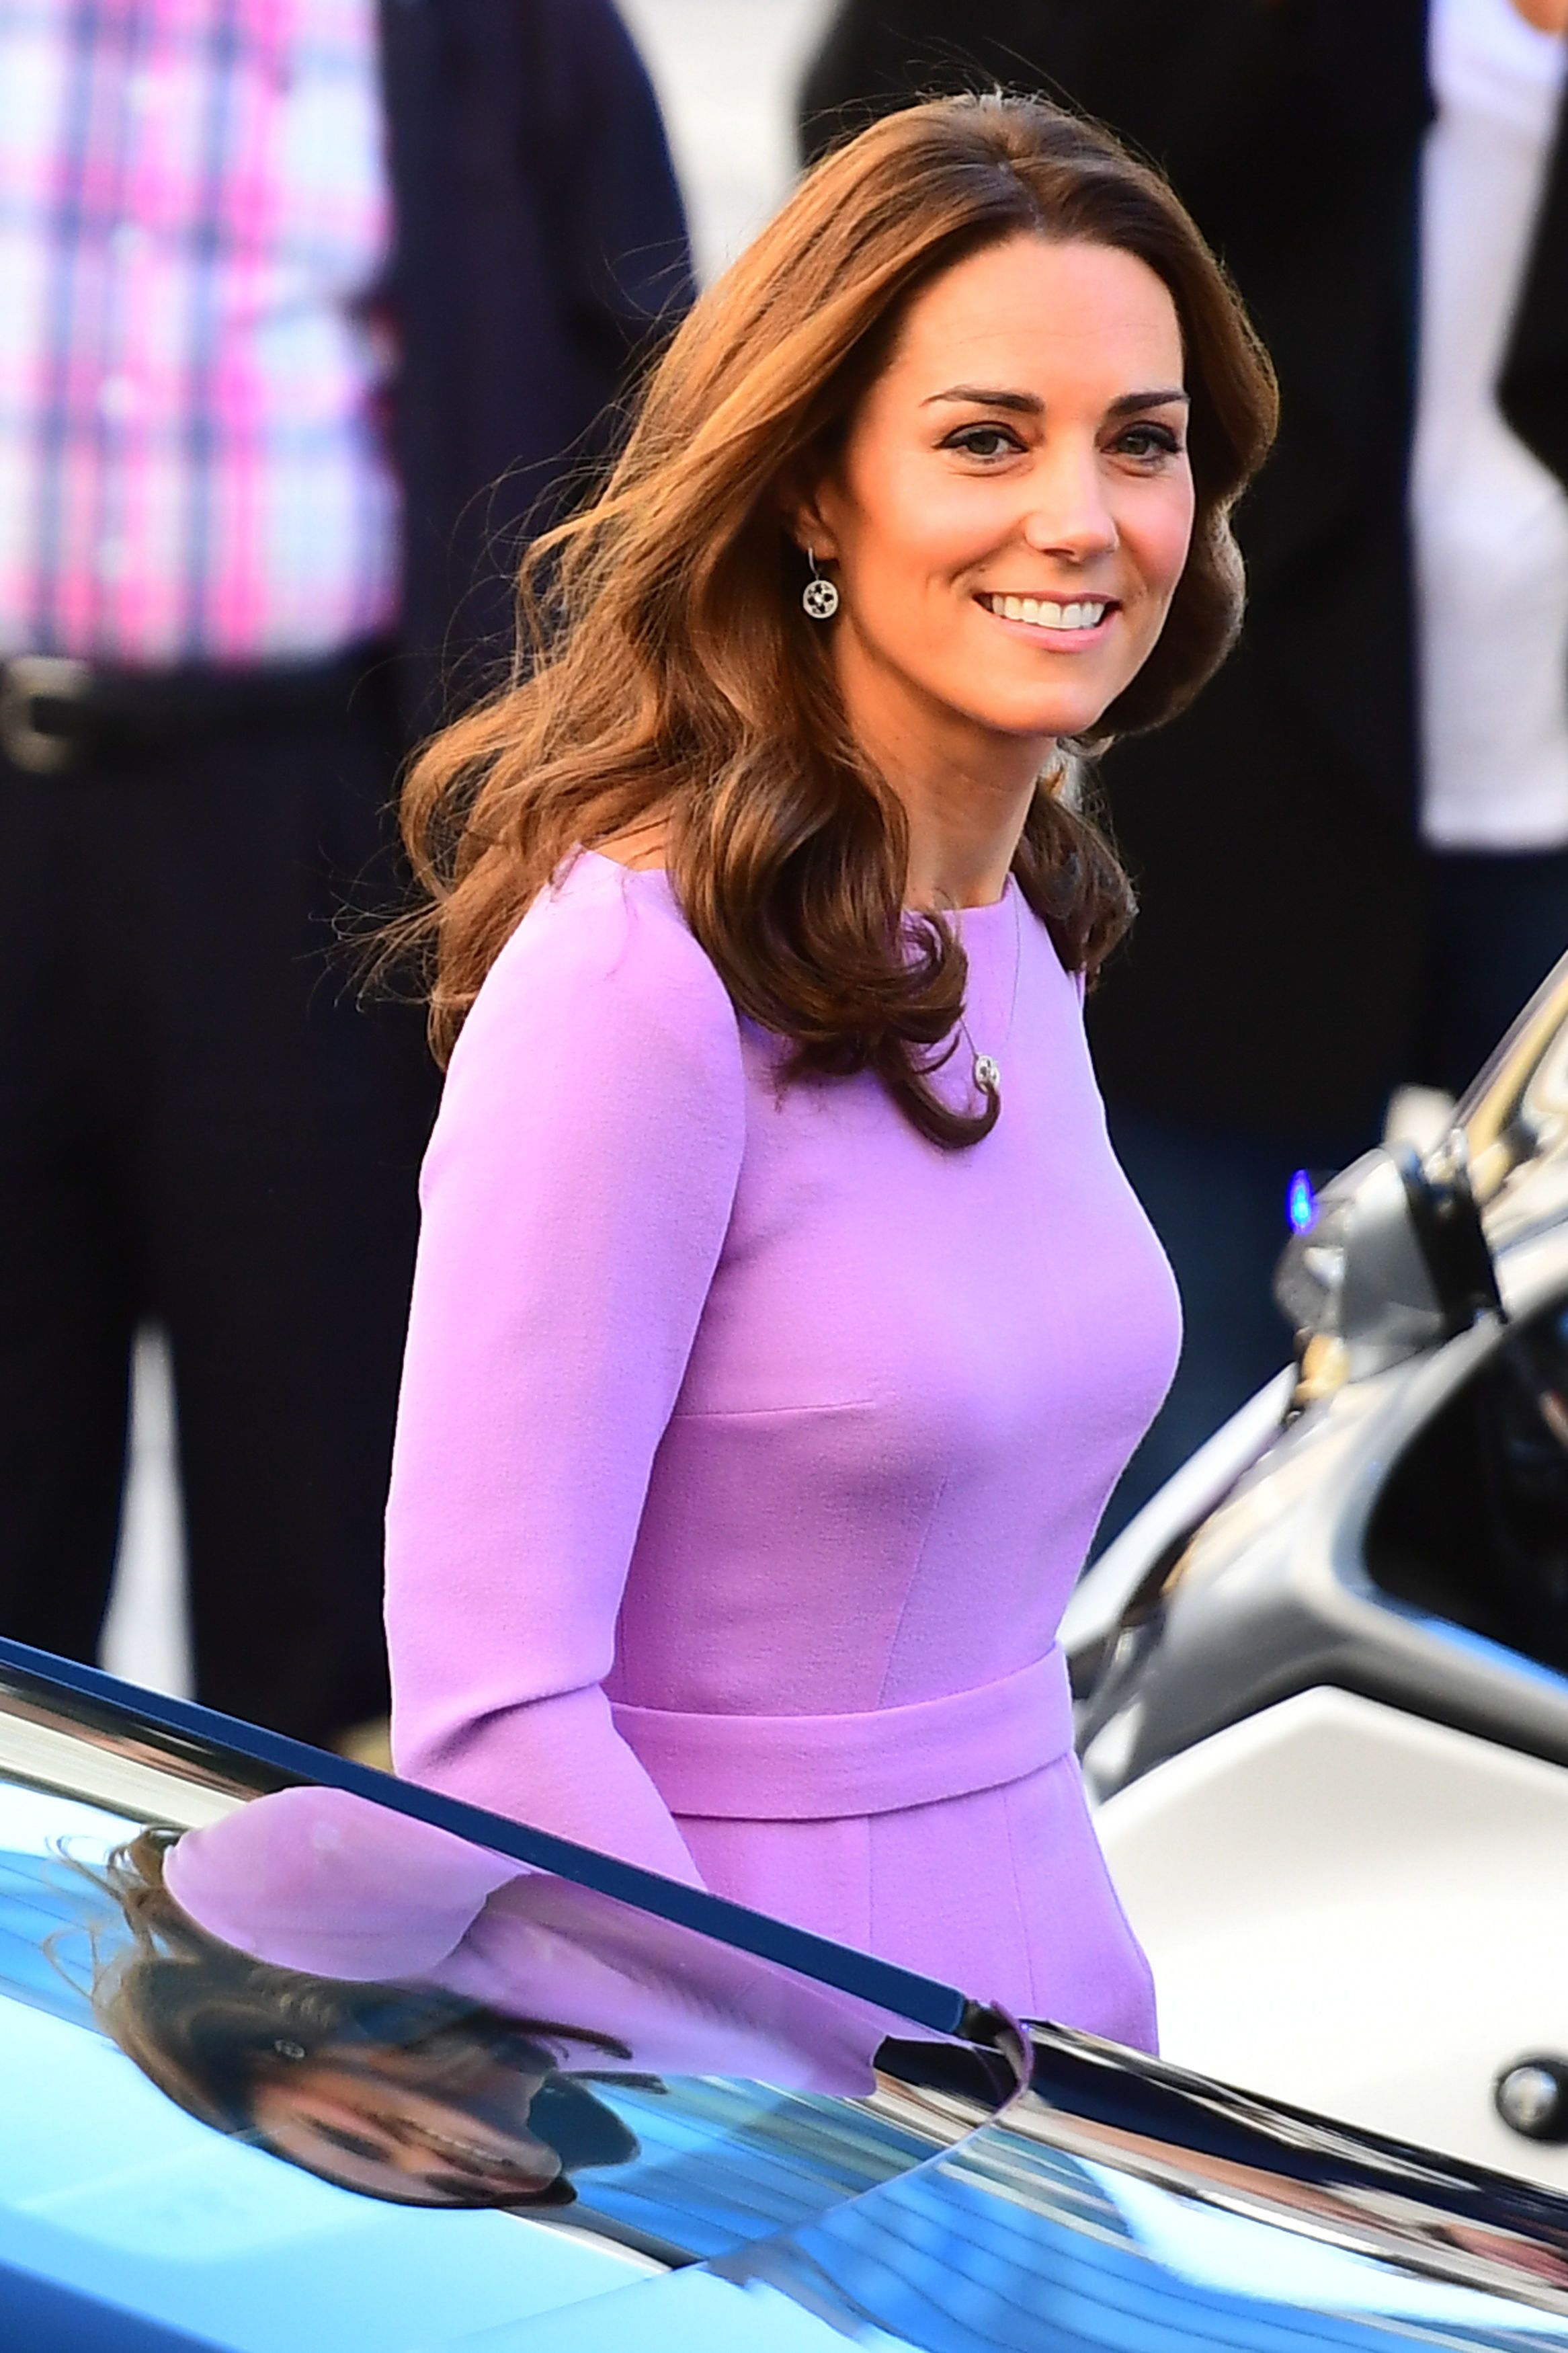 The Duchess of Cambridge arrives to attend the Global Ministerial Mental Health Summit at County Hall in London.